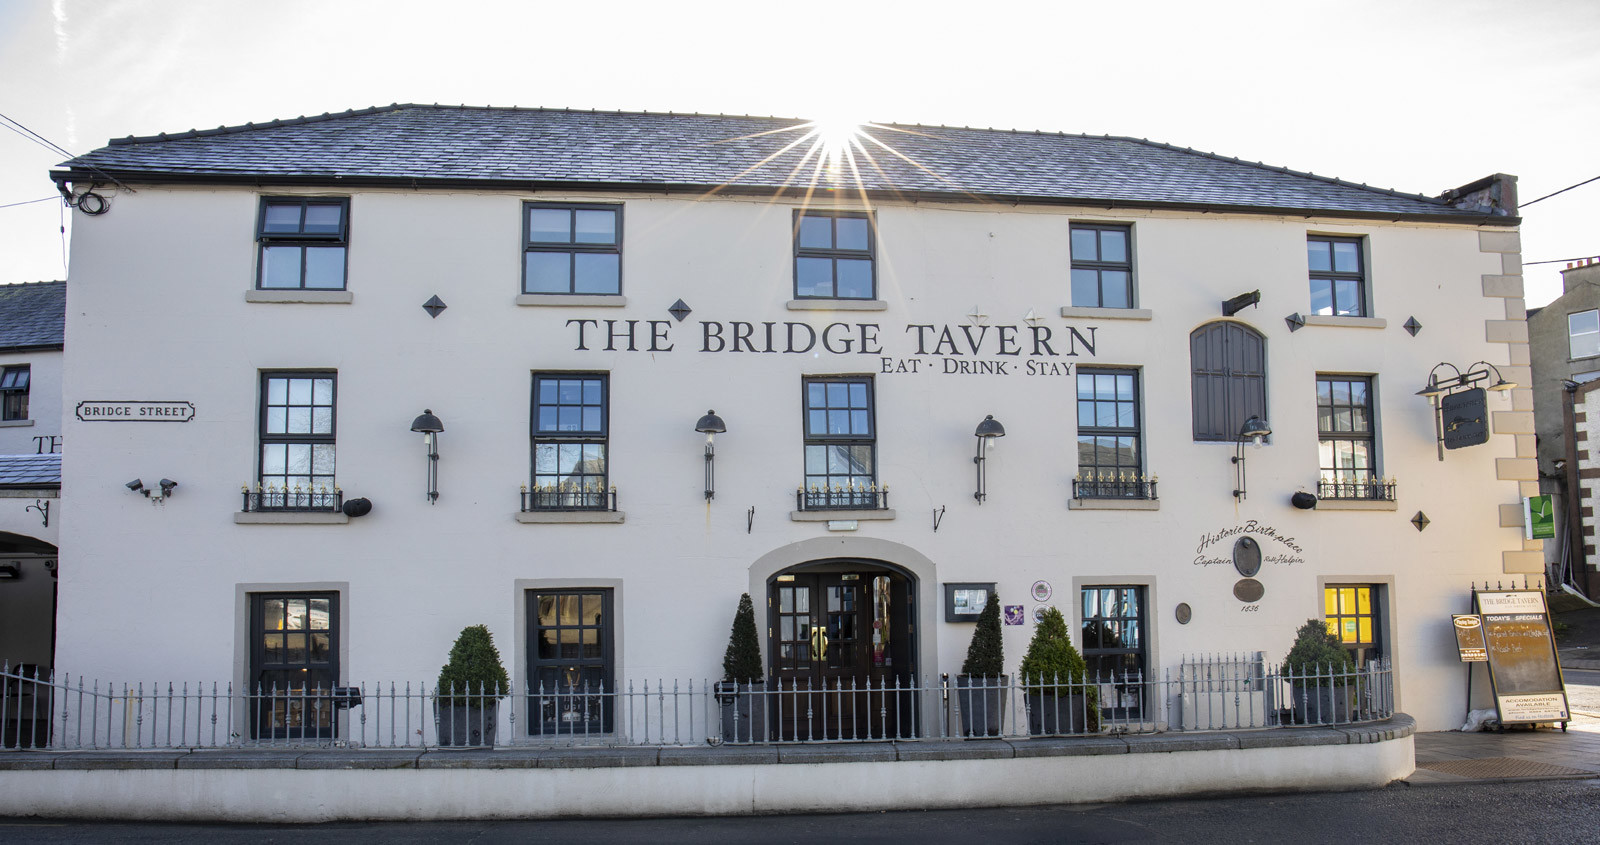 Accommodation, Food & Drink in Wicklow - The Bridge Tavern Wicklow